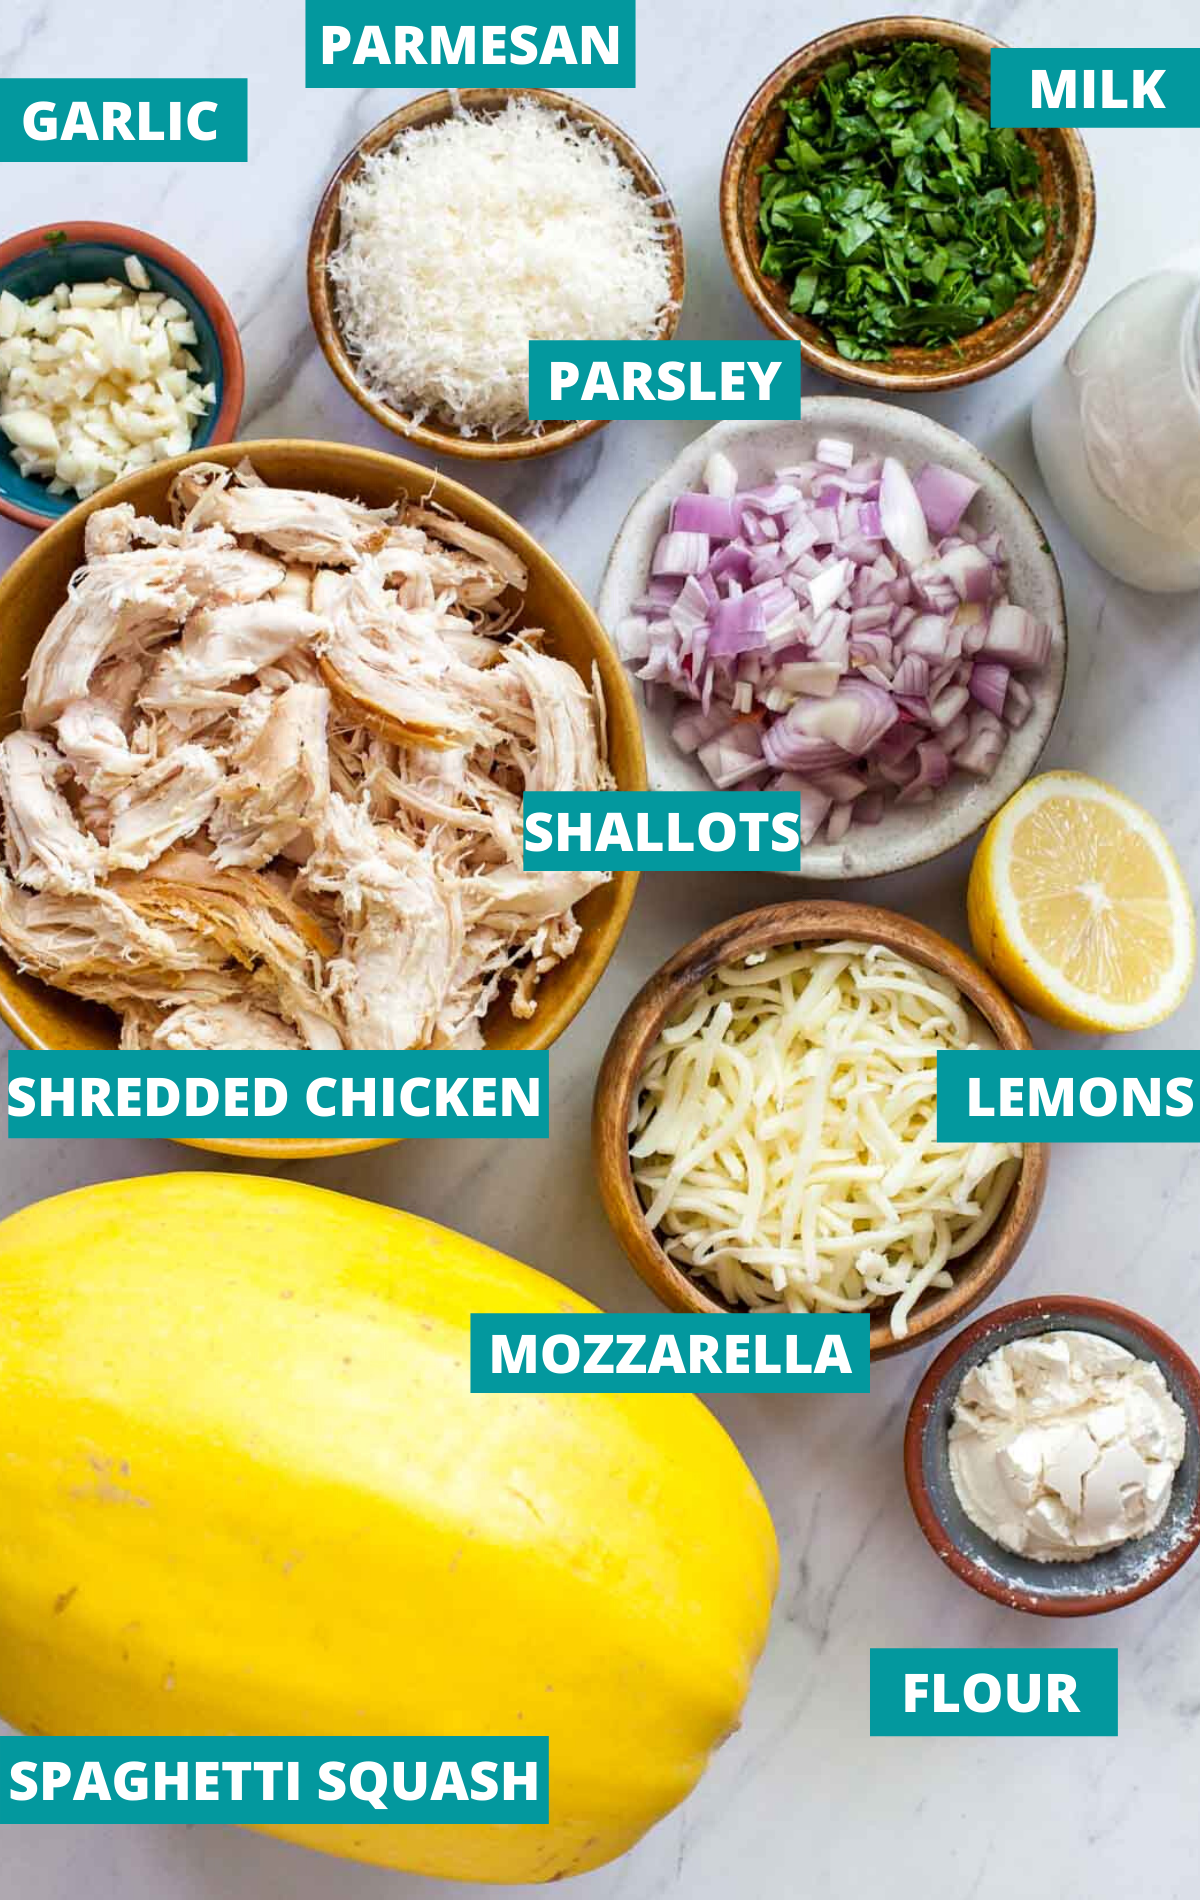 Recipe ingredients (including spaghetti squash, shredded chicken, cheese, parsley, and shallots) in separate bowls with ingredient labels